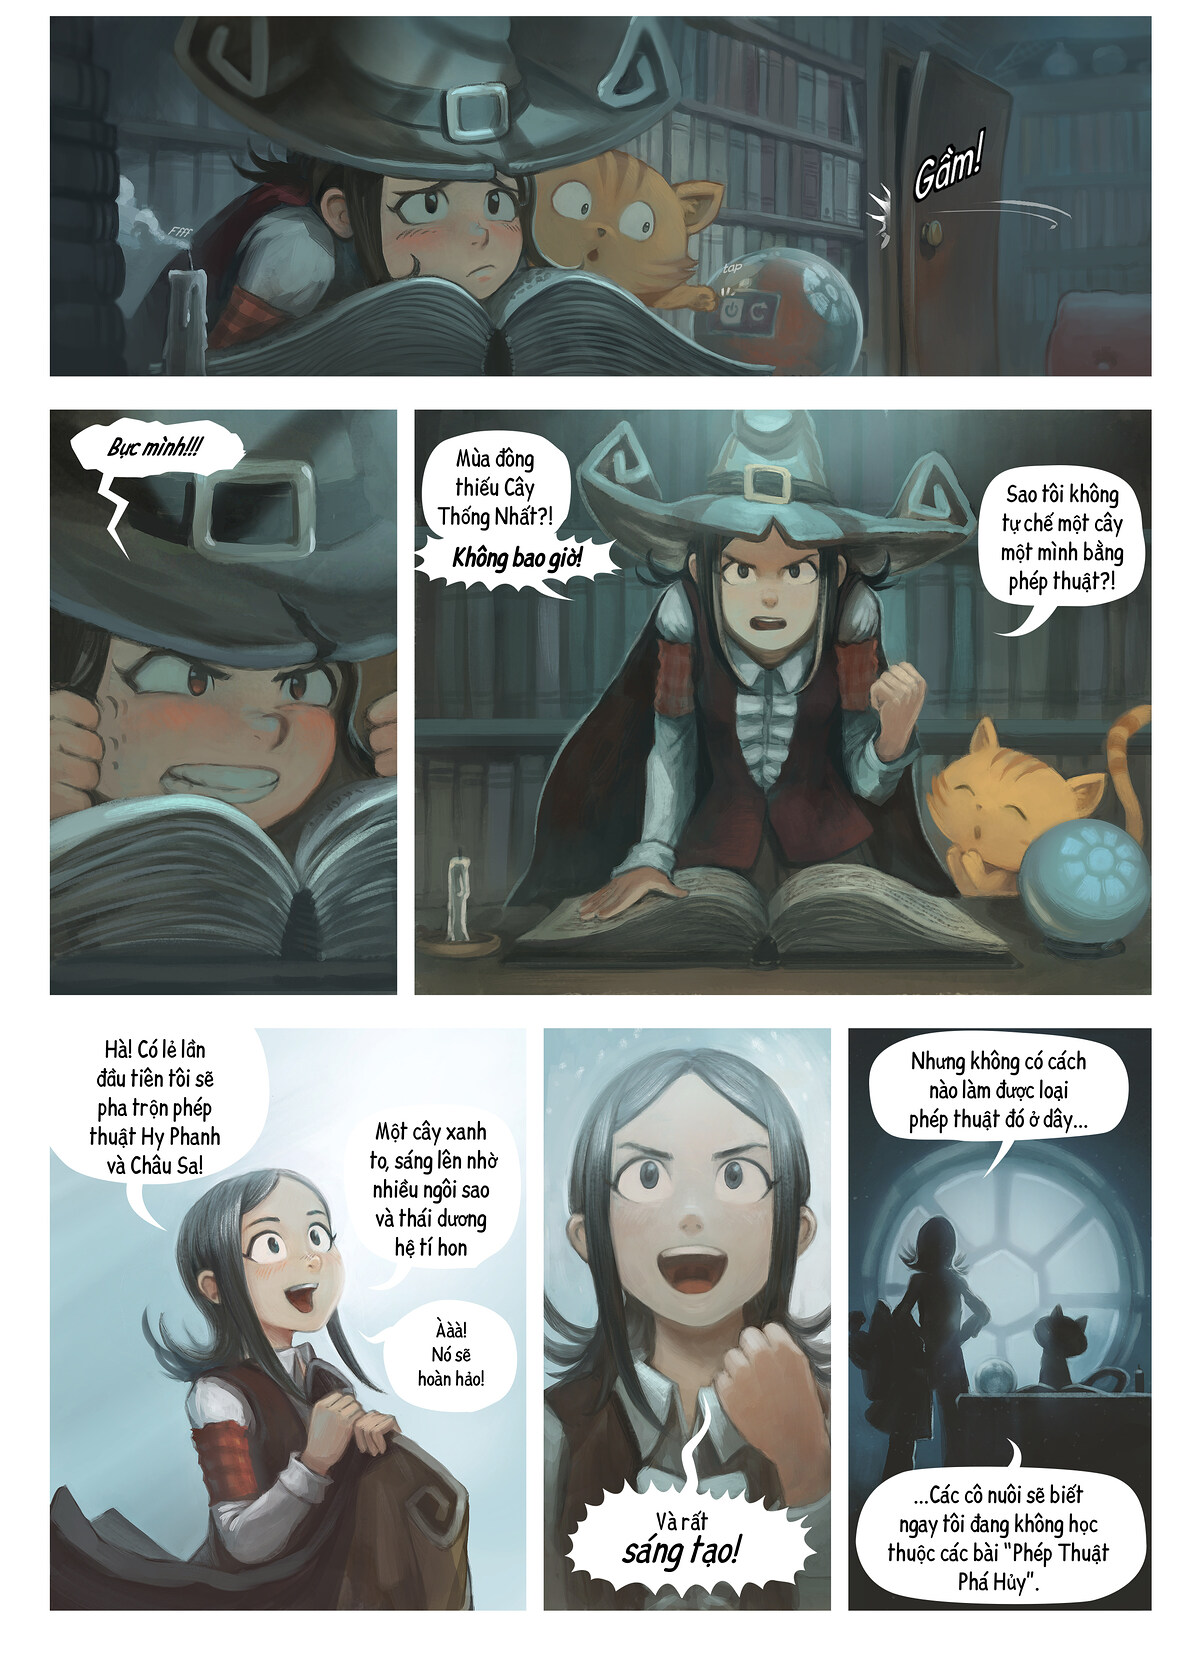 A webcomic page of Pepper&Carrot, Tập 24 [vi], trang 2